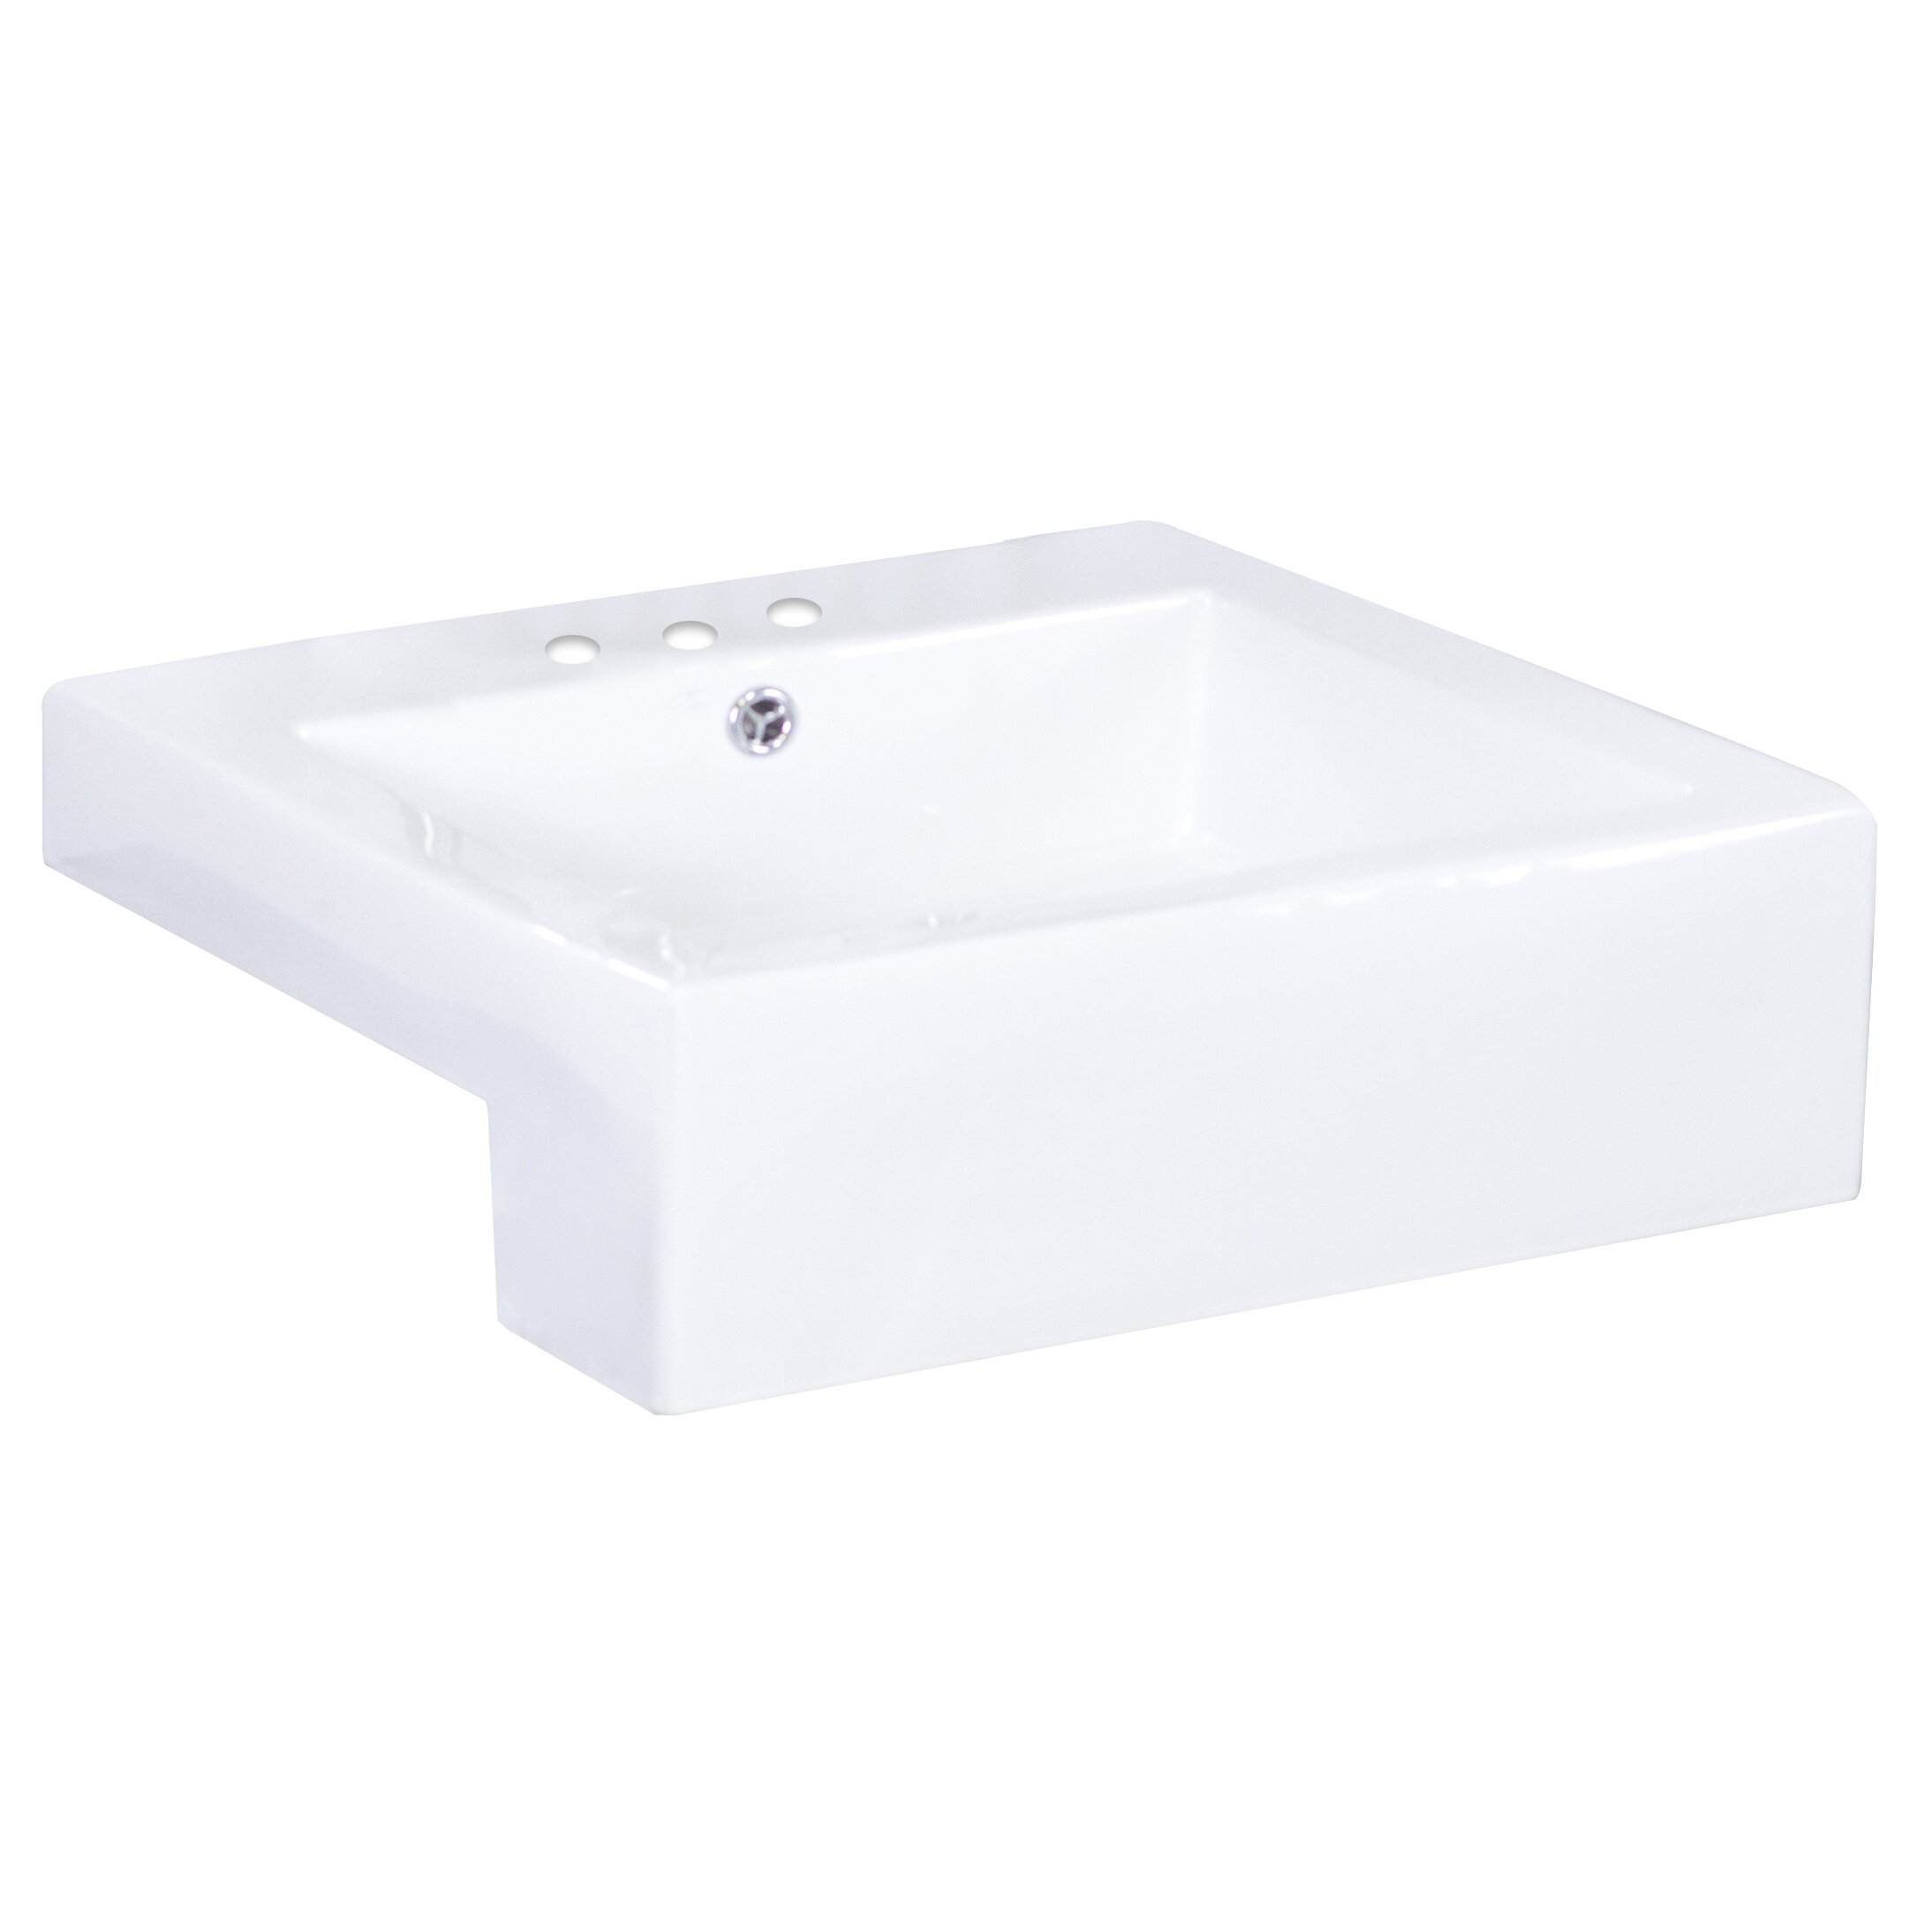 Semi-Recessed Rectangle Vessel Bathroom Sink by American Imaginations